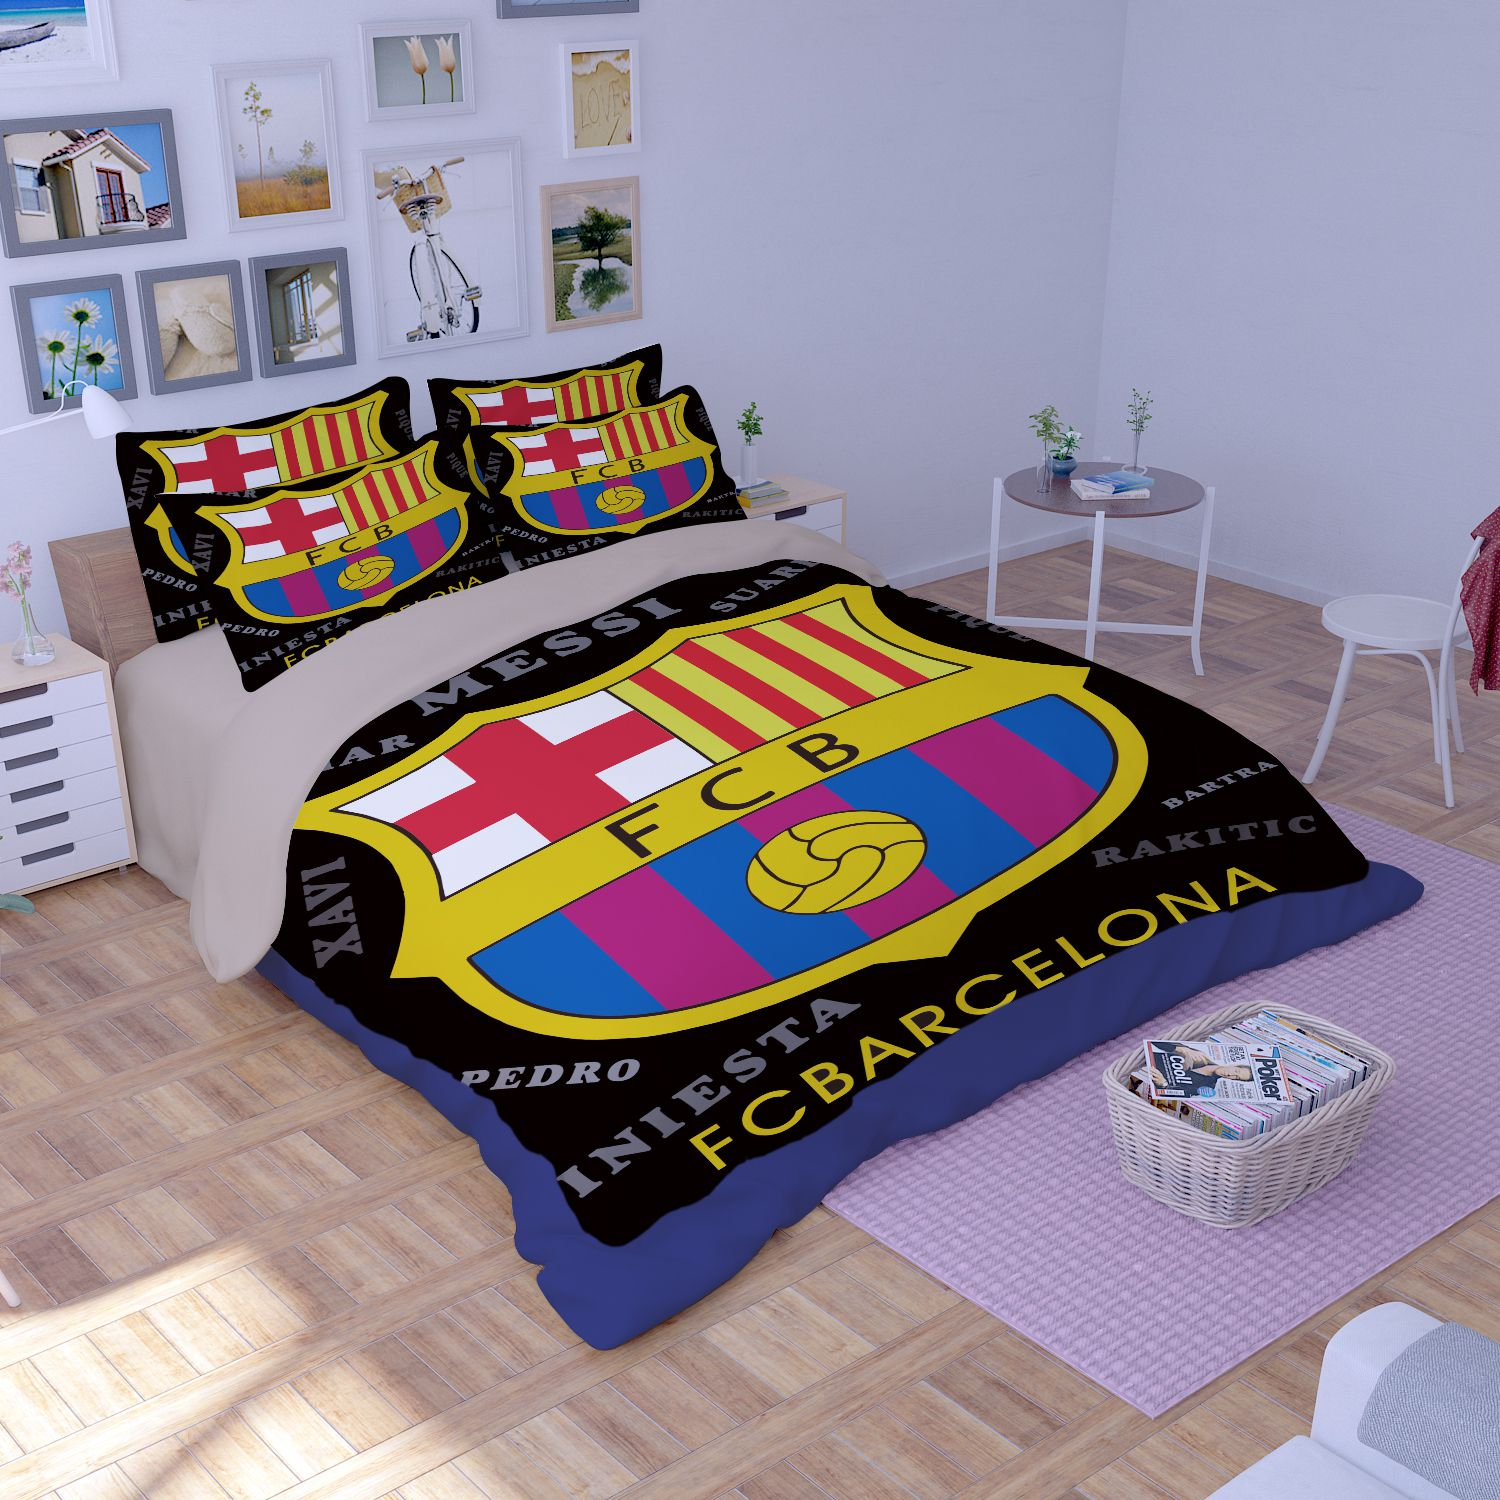 bed fifa a in soccer usa comforter blue bag gray full world twin eht queen p set flags bedding